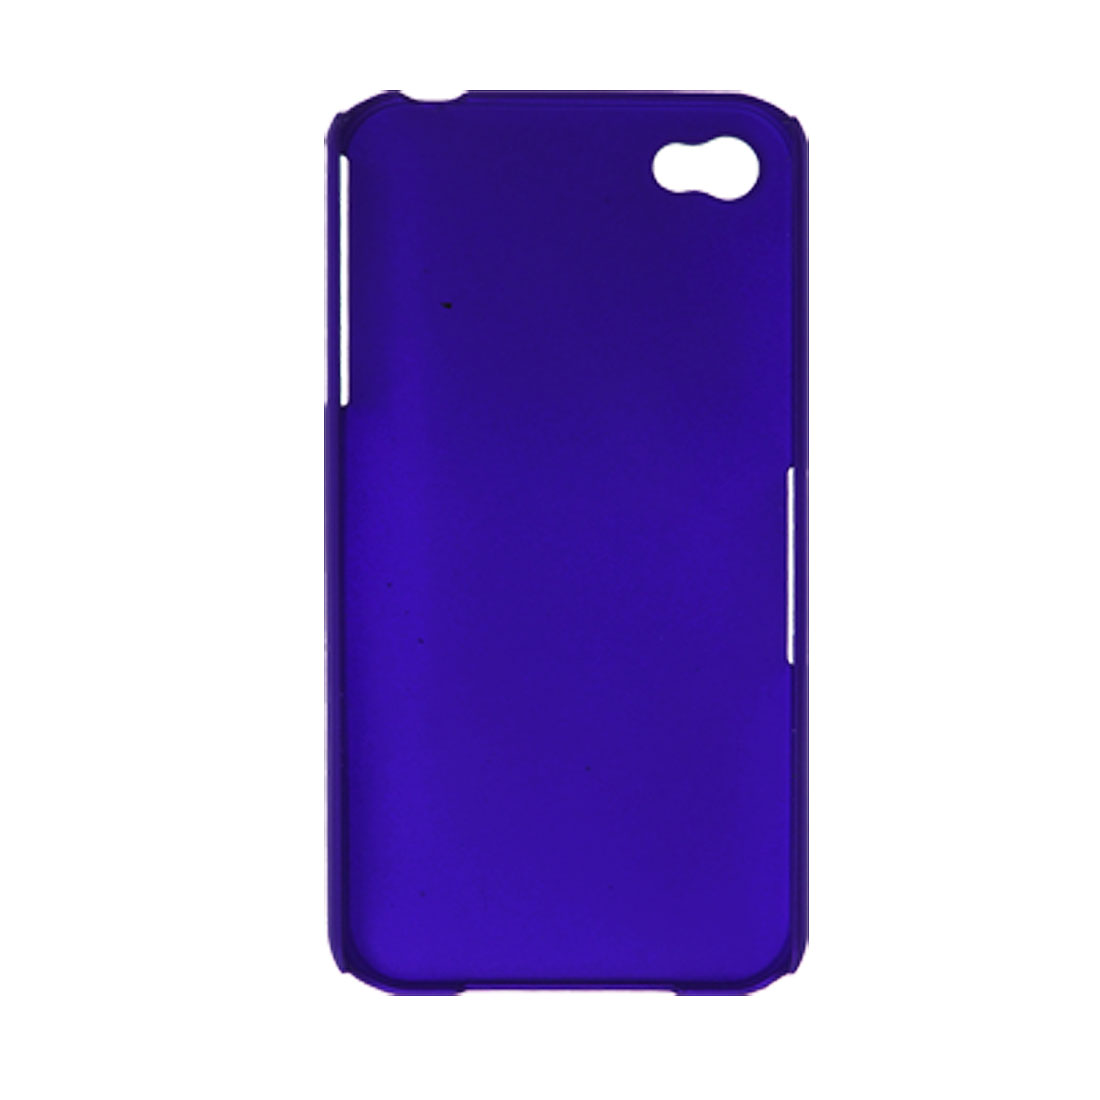 Blue Rubberized Plastic Back Case Shell for Apple iPhone 4 4G